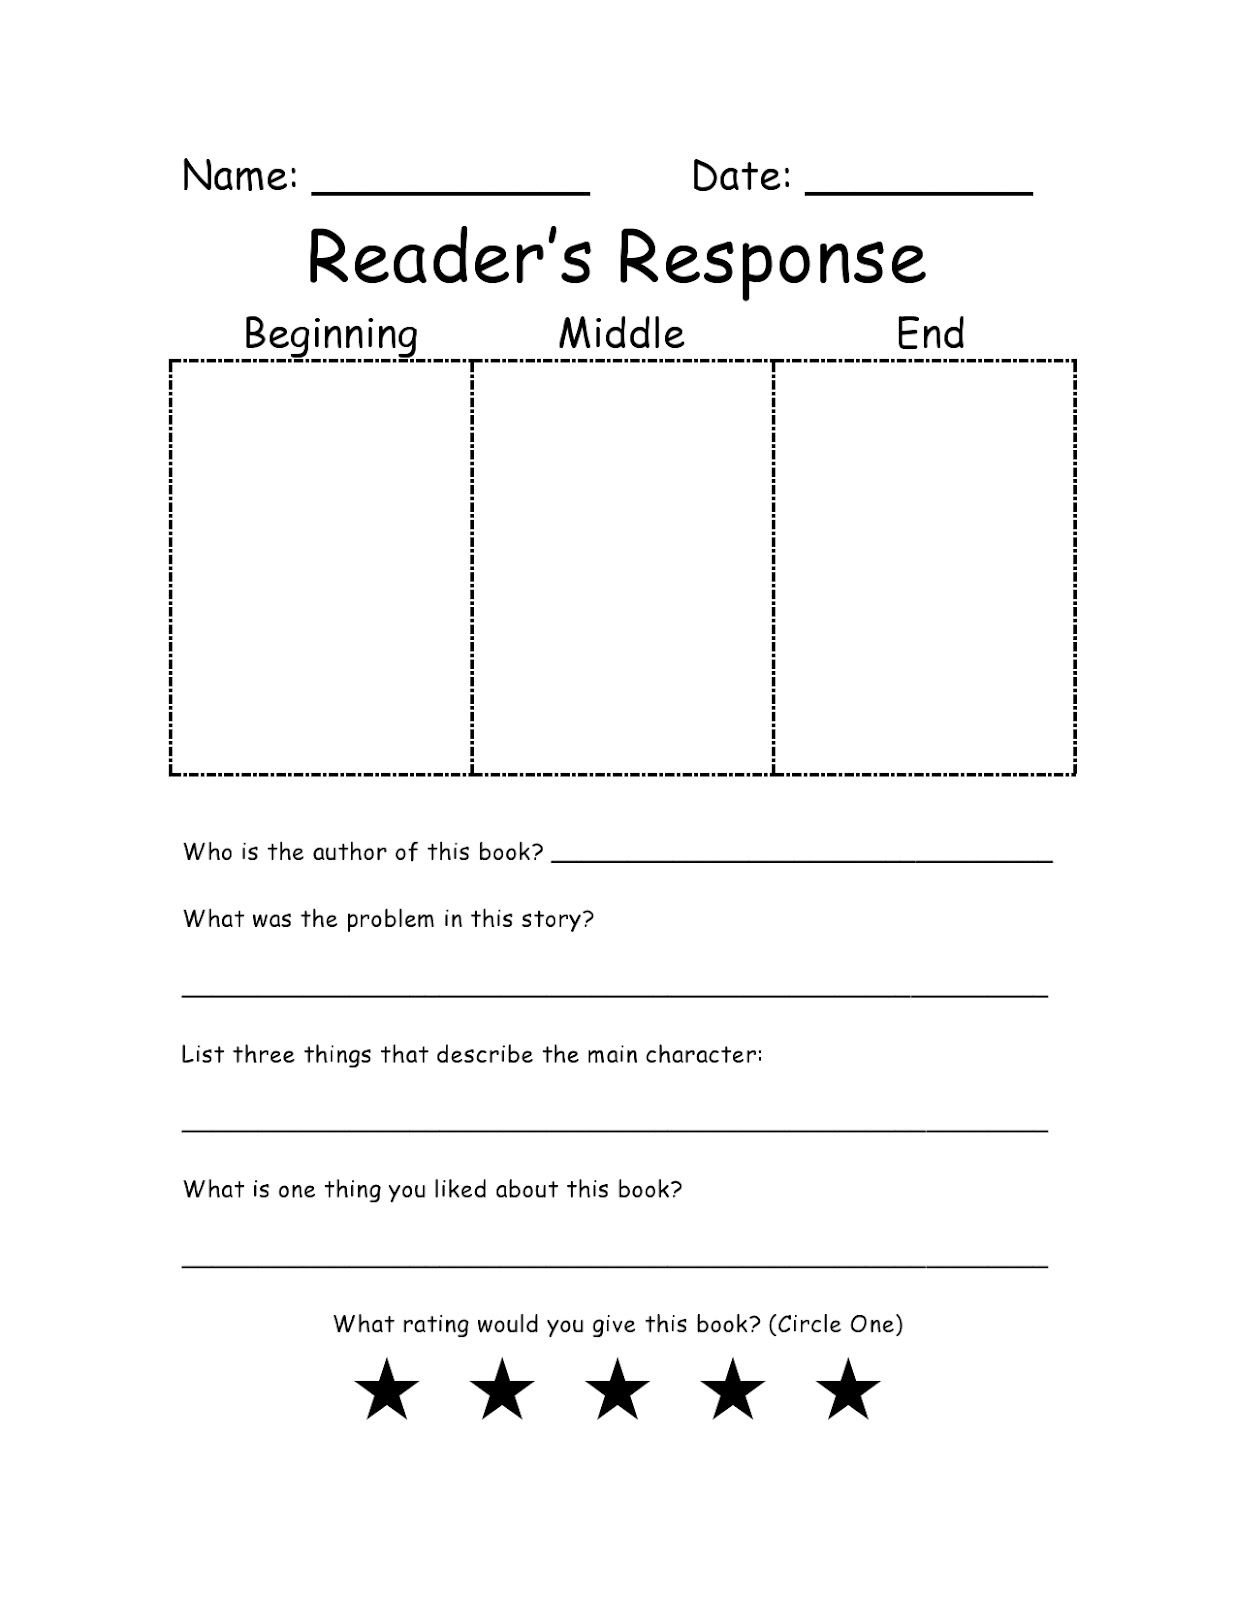 medium resolution of Beginning Middle And End Graphic Organizer Worksheet Examples   Reading  response